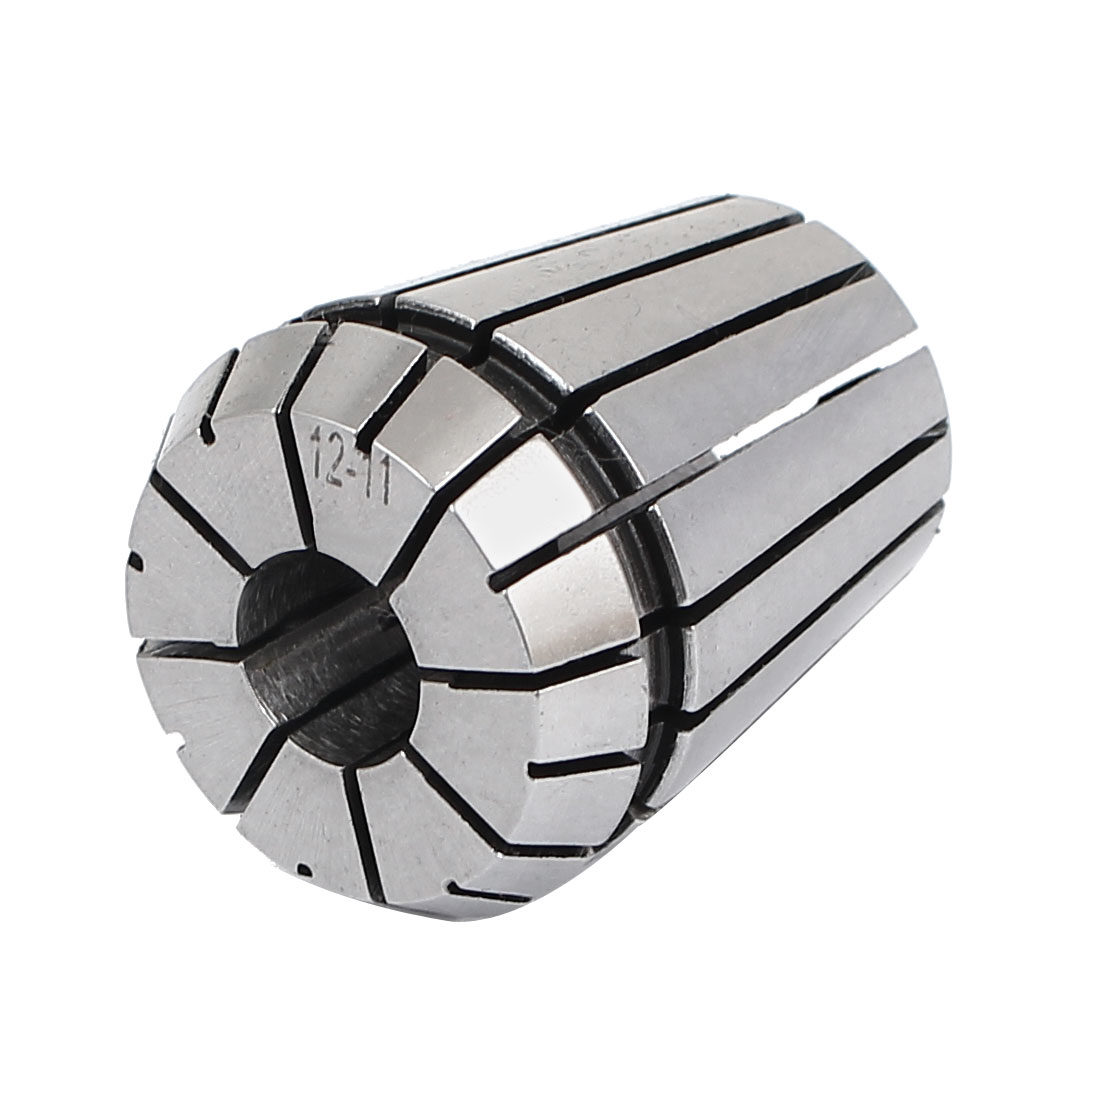 ER32 12mm Clamping Dia CNC Engraving Milling Machine Spring Collet Chuck